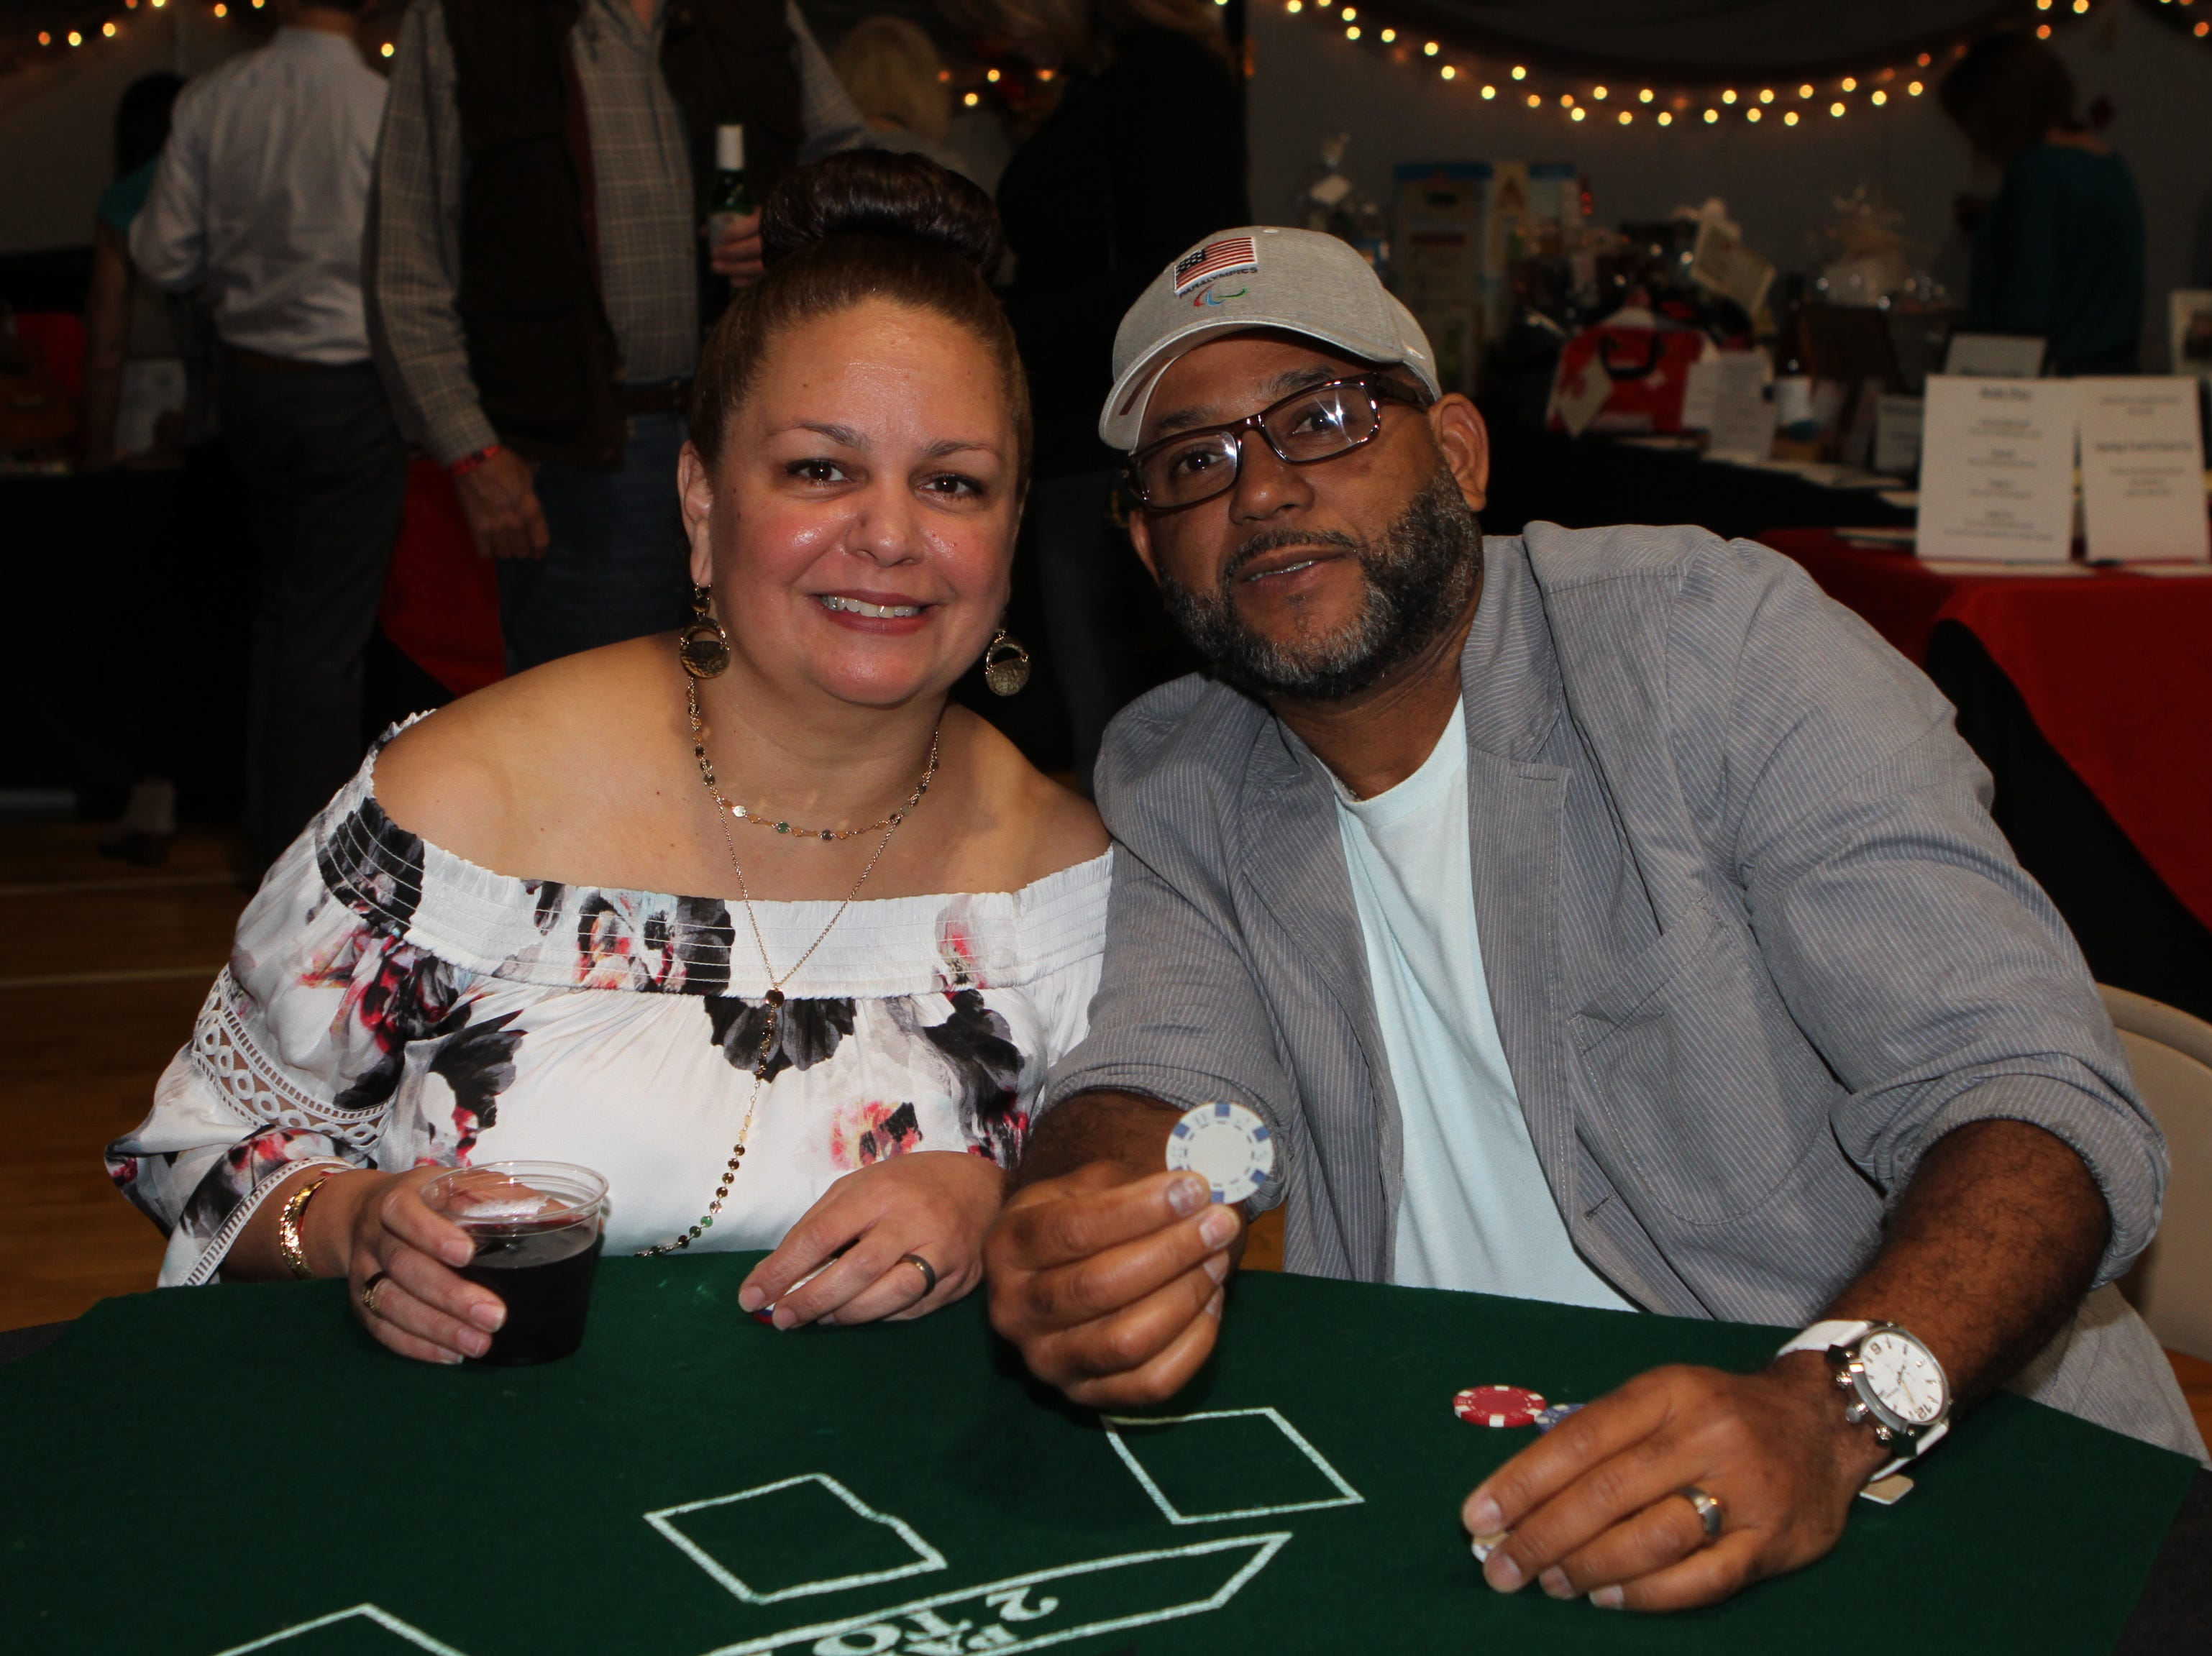 Carol and Robert Cala at Casino Night at Immaculate Conception School on Saturday, Nov. 3, 2018.